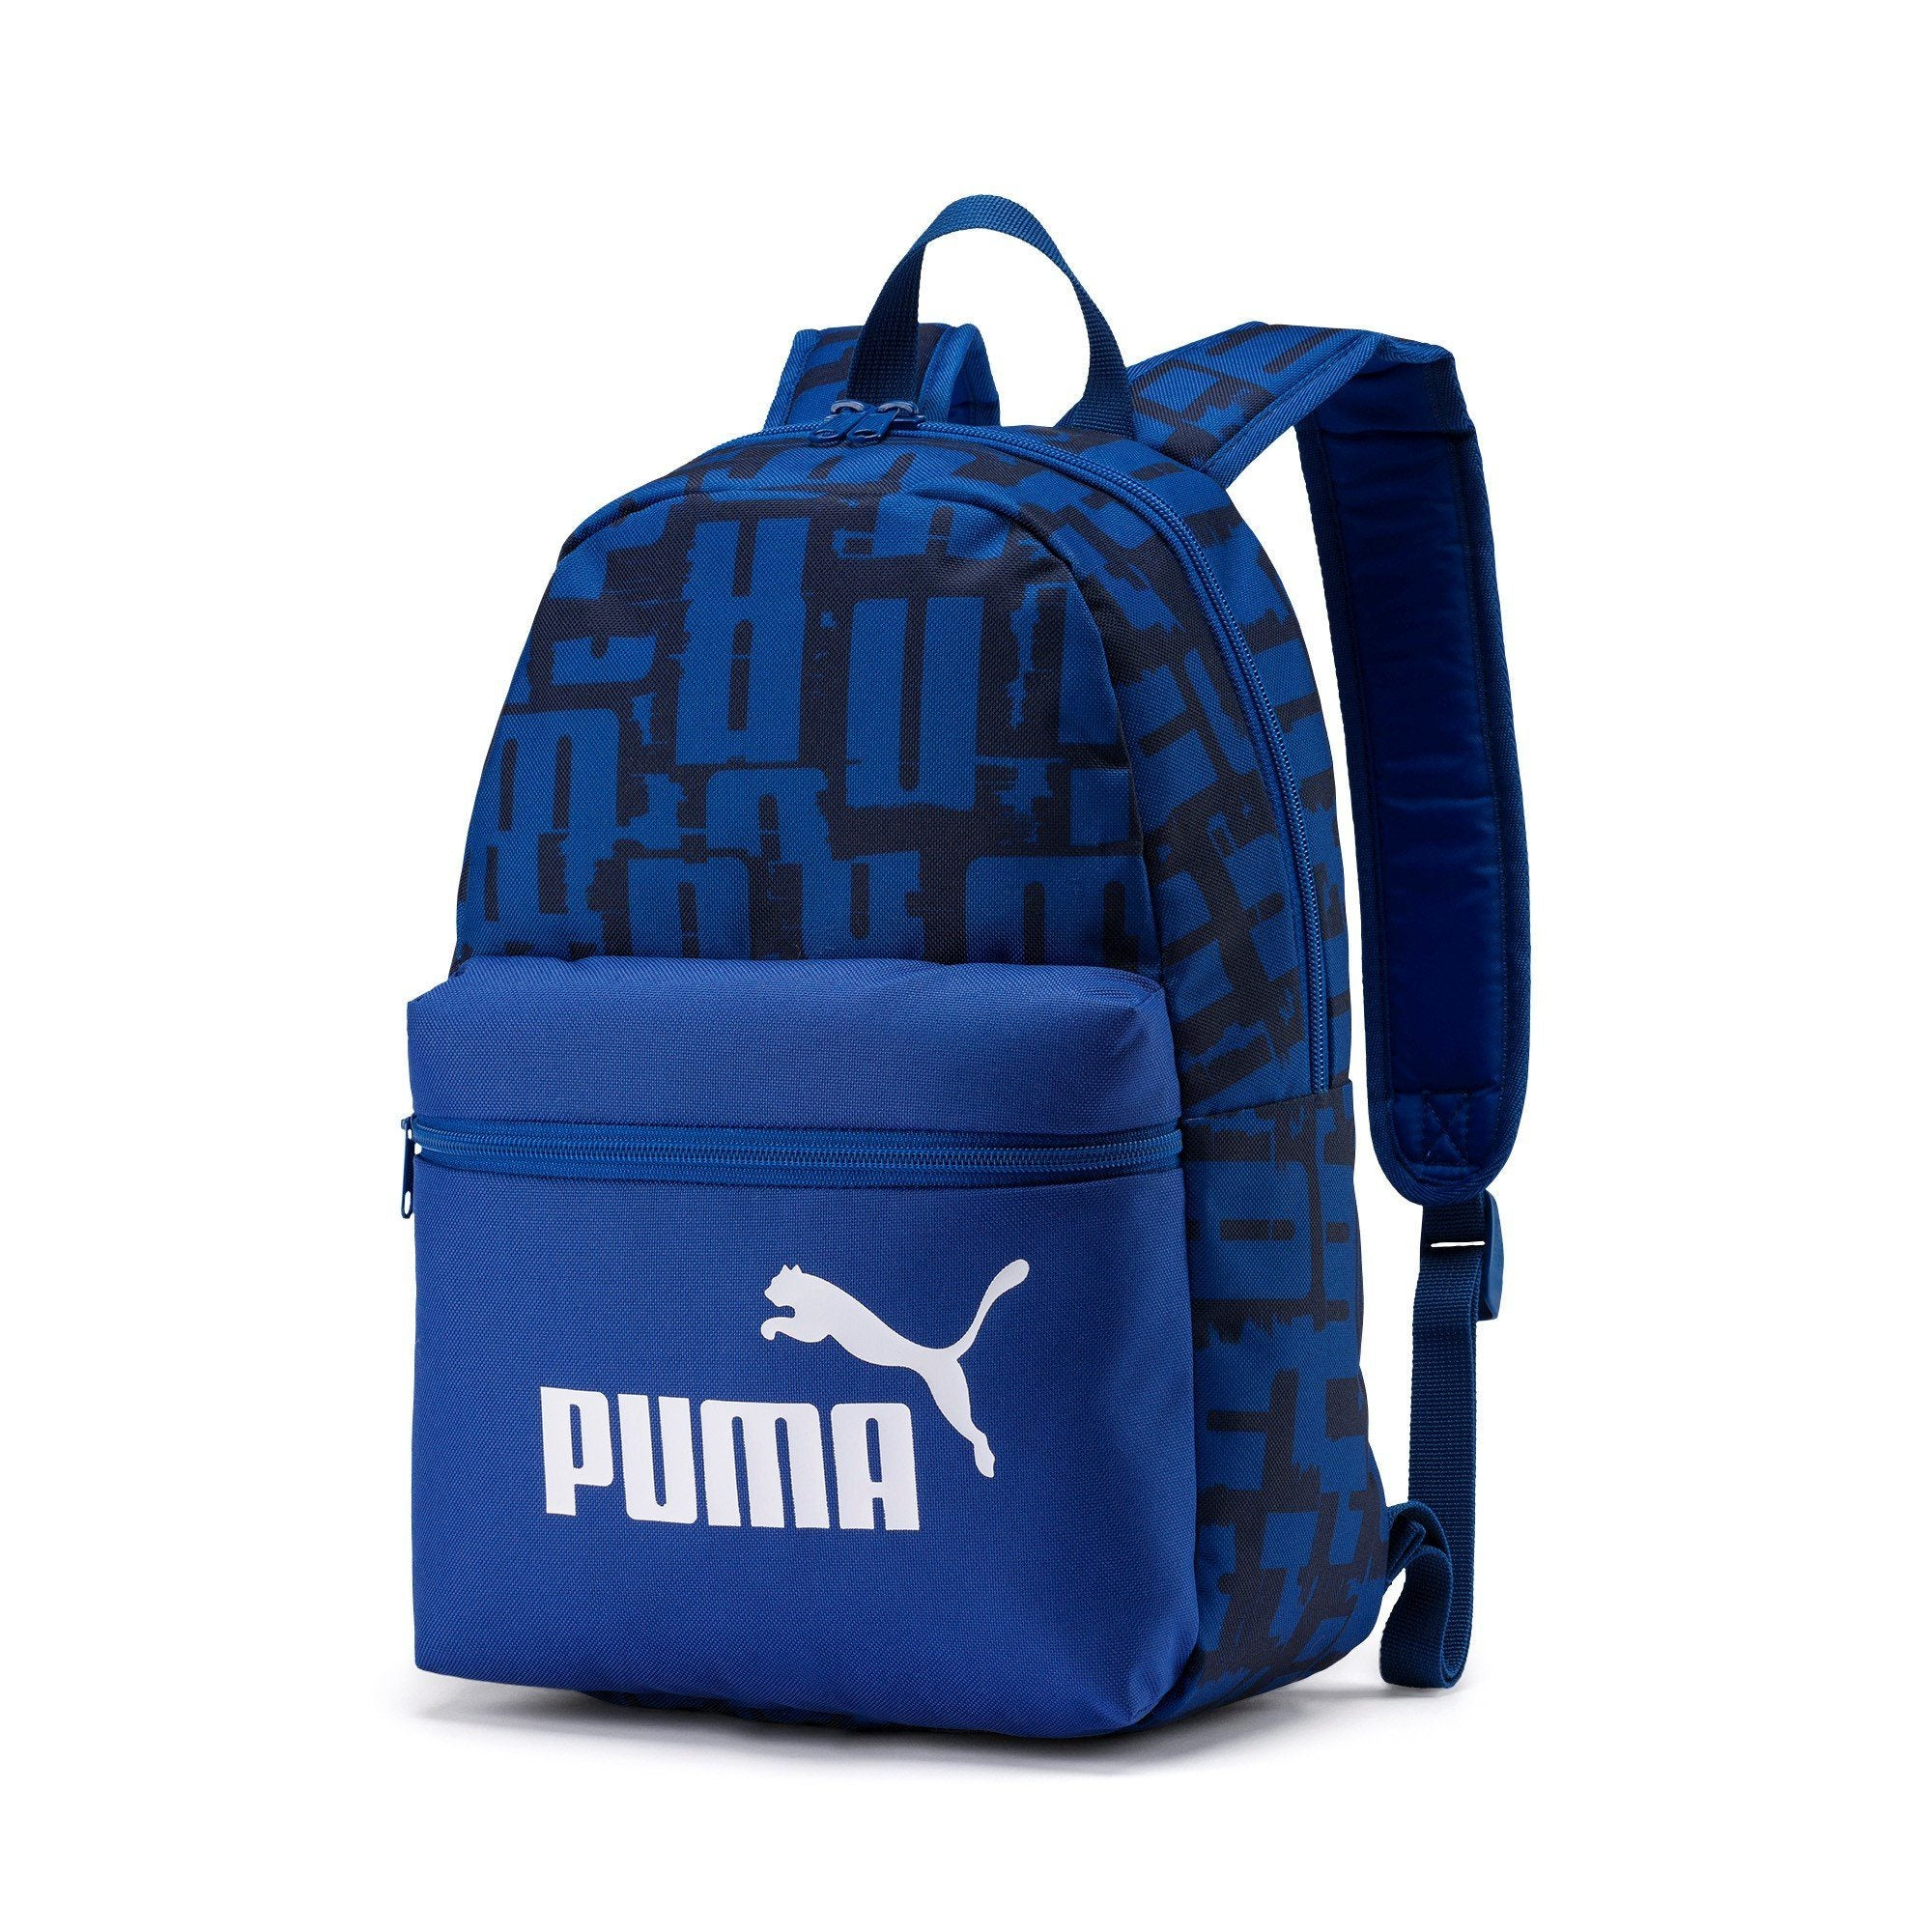 Puma Phase Small Backpack - Galaxy Blue/Peacoat SP-Accessories-Bags Puma